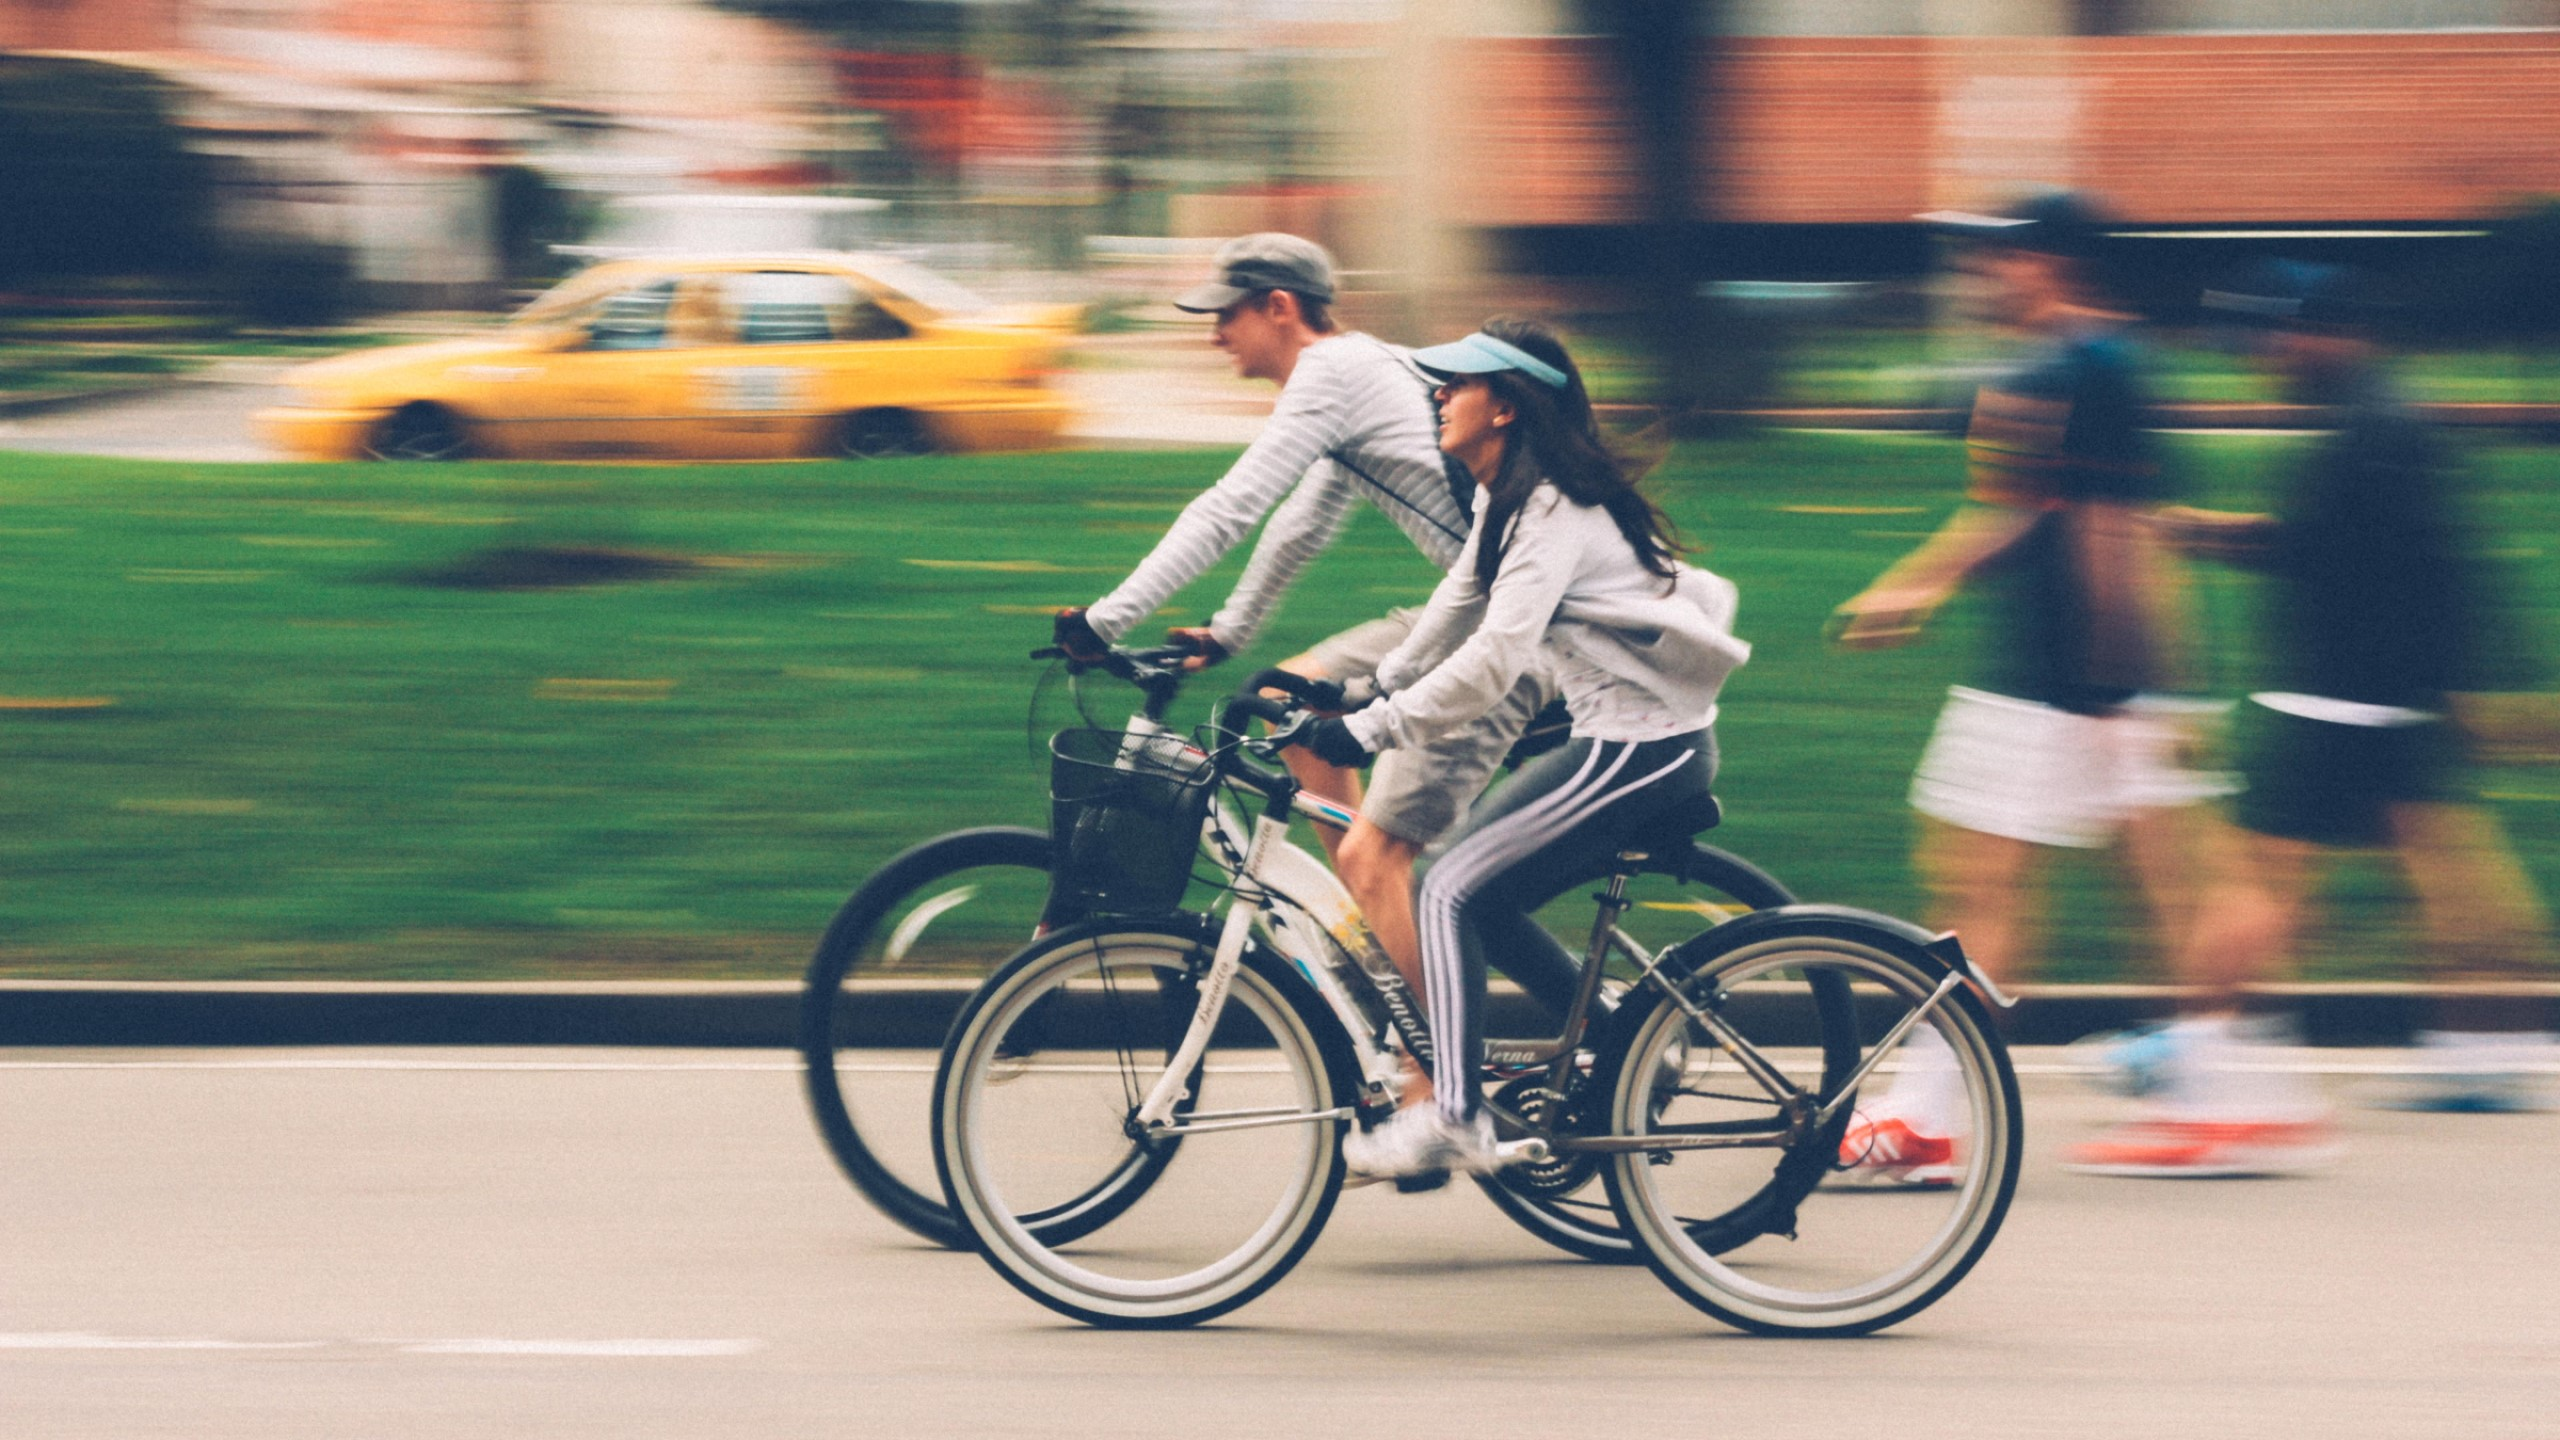 Photo of a man and a woman on bicycles